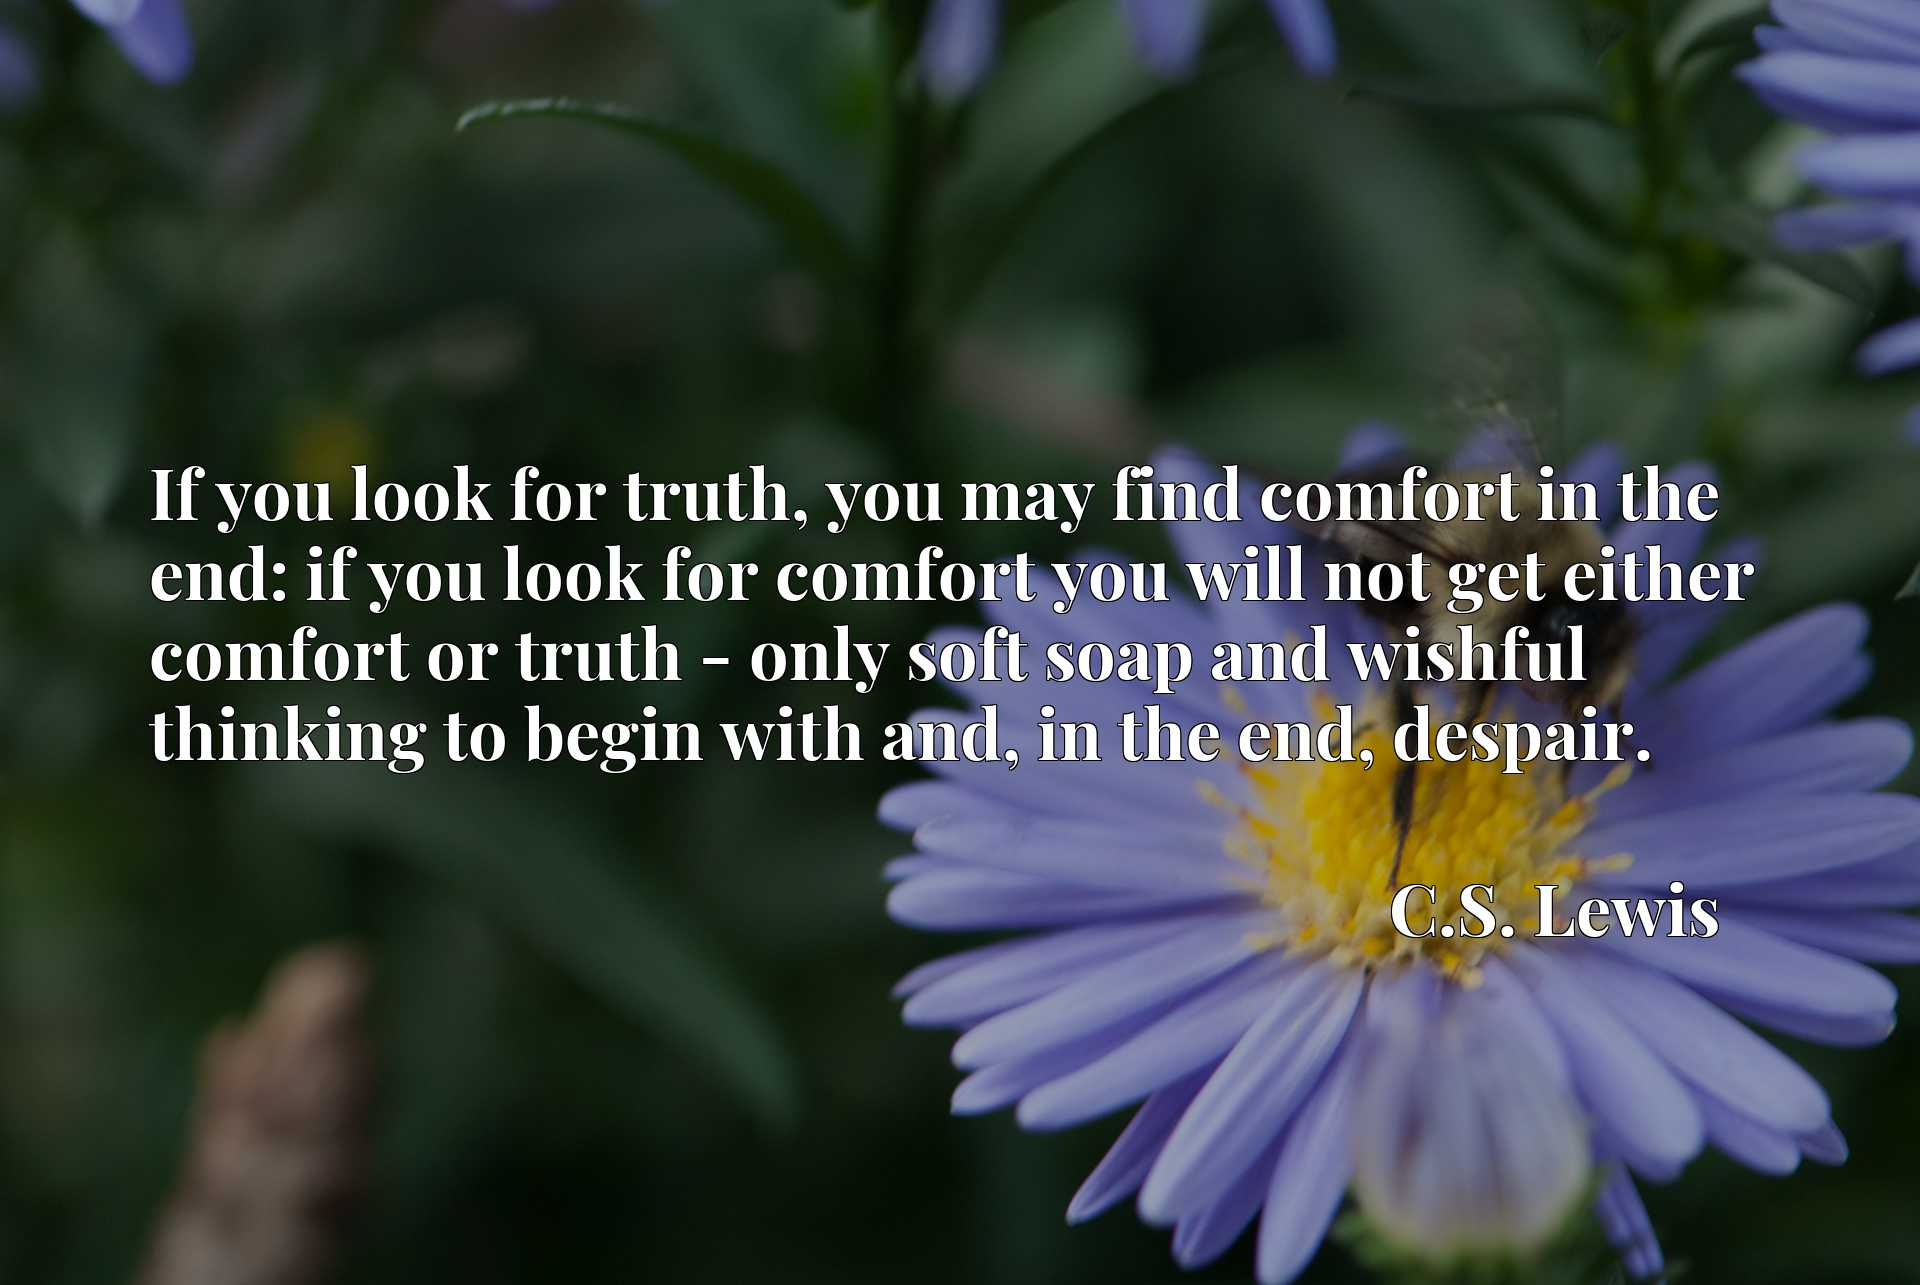 If you look for truth, you may find comfort in the end: if you look for comfort you will not get either comfort or truth - only soft soap and wishful thinking to begin with and, in the end, despair.